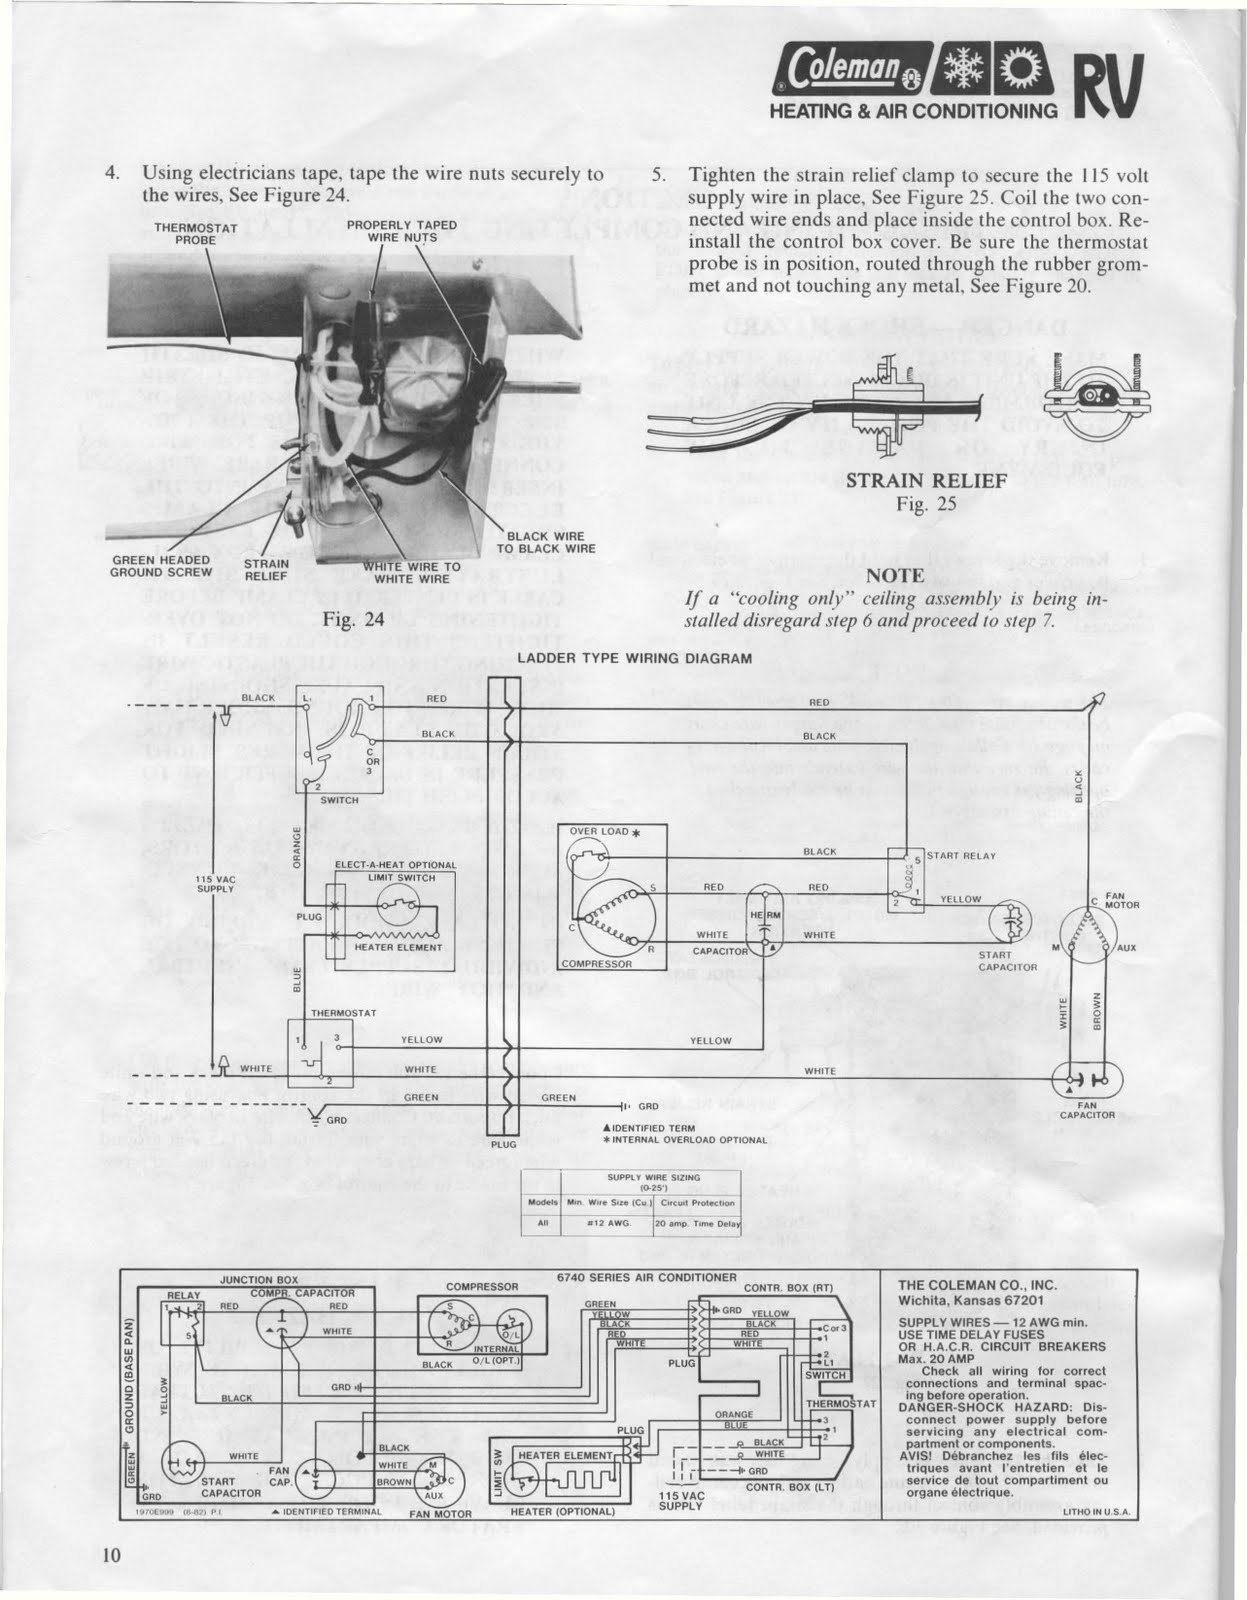 Air Conditioner Breaker Box Diagram Wire Electrical Wiring Diagrams Schematics Jayco Conditioning Main